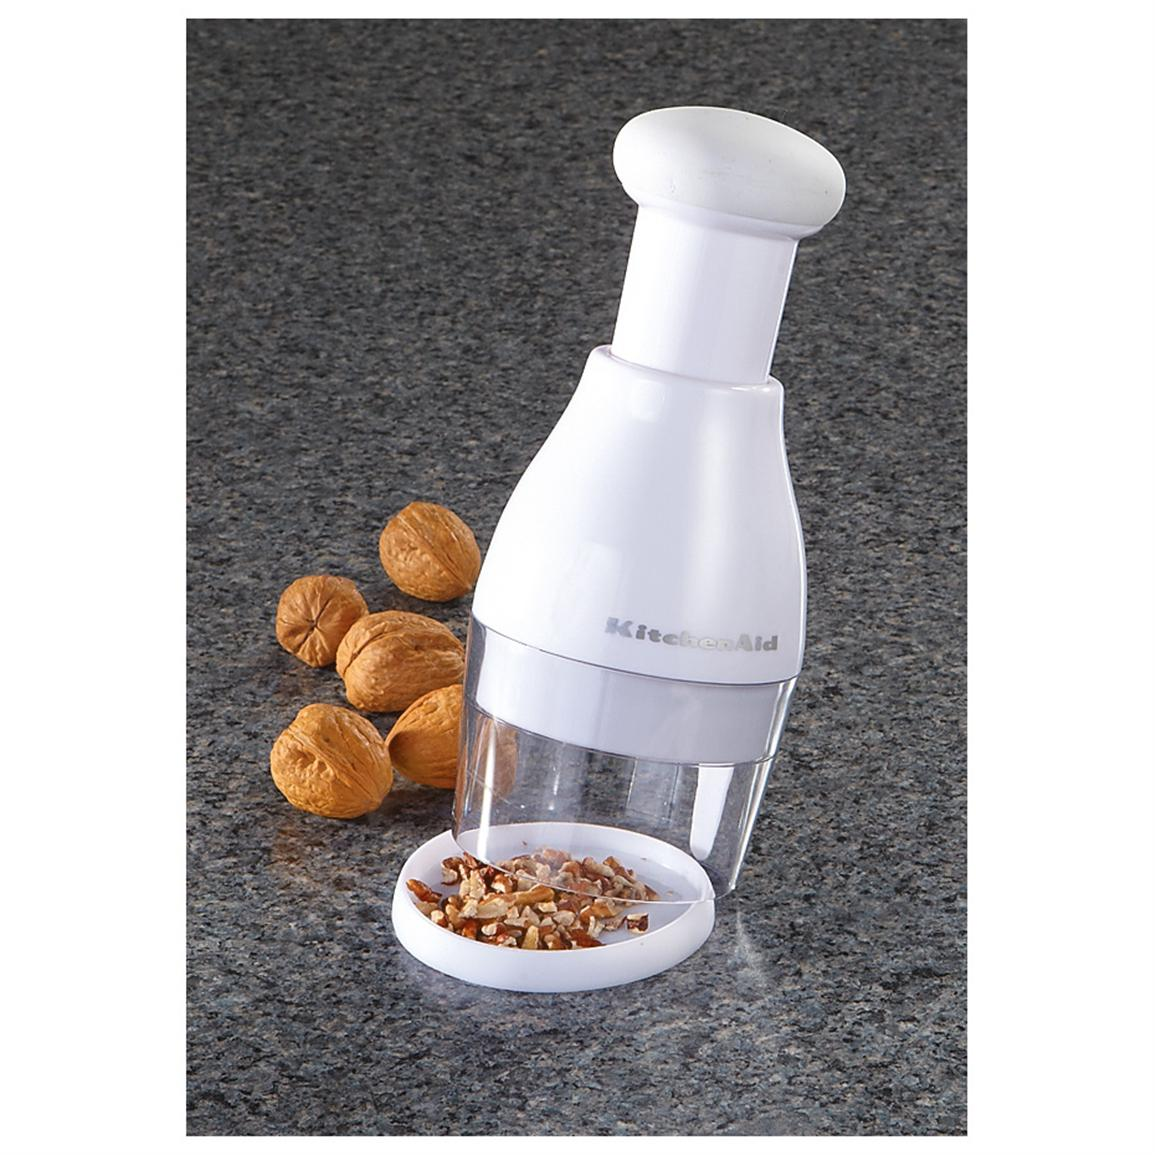 Beau Published December 22, 2015 At 1155 × 1155 In Kitchenaid Hand Chopper.